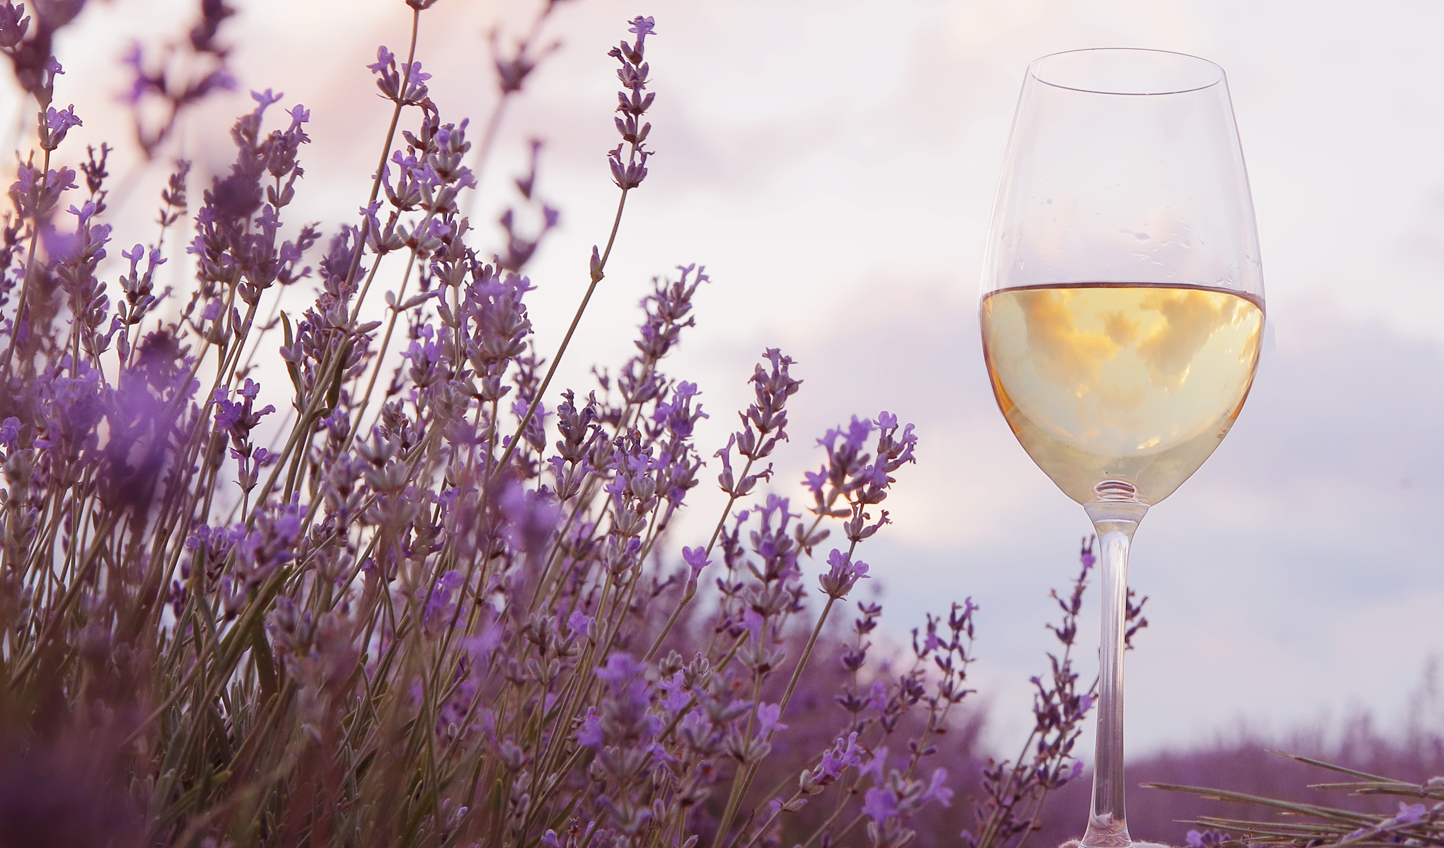 Crisp wines in fragrant fields